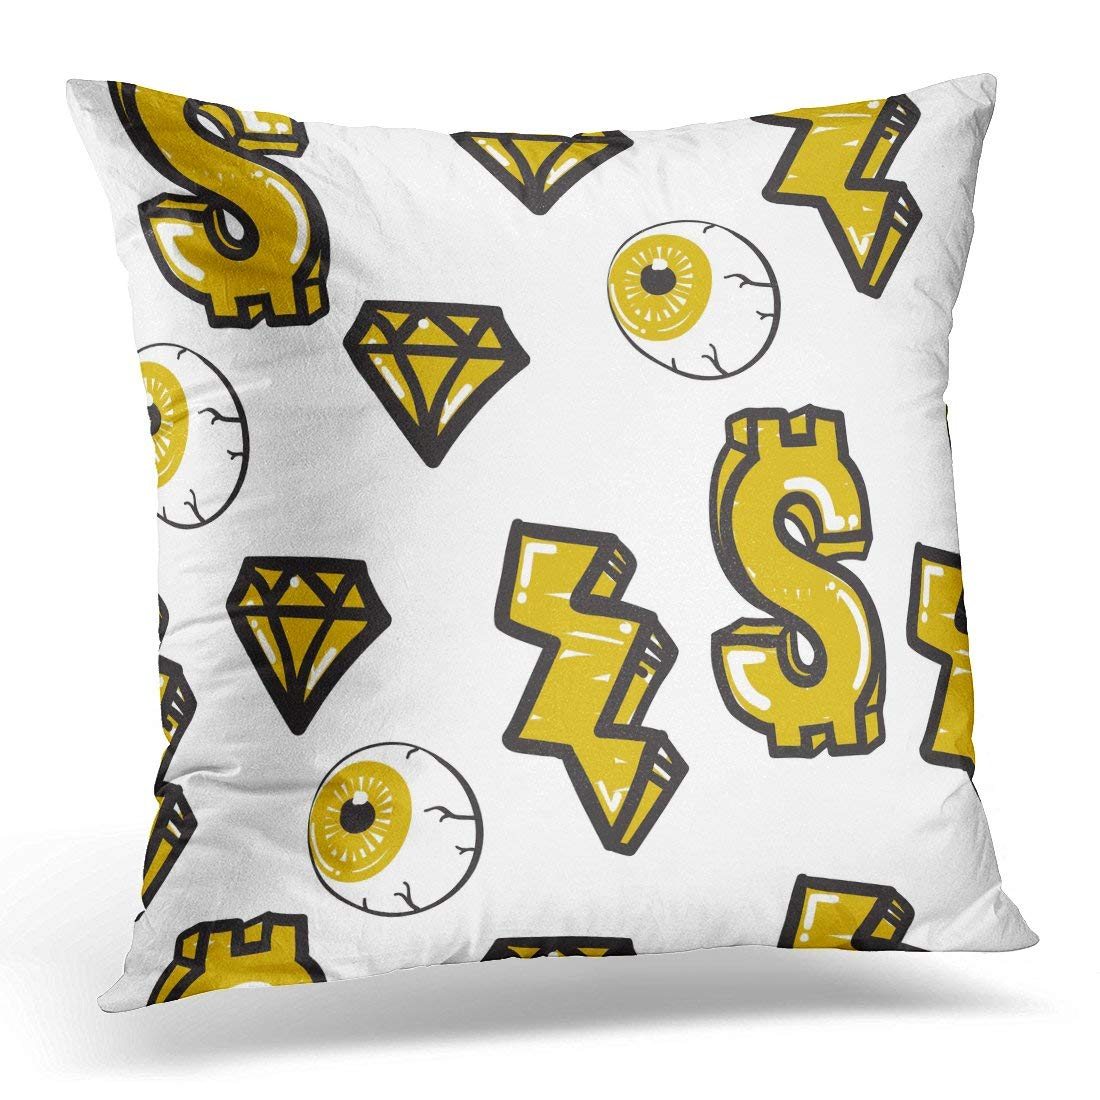 ARHOME Graffiti Original Youth Patterns for Using on Any Items Curtains Yellow and Black Colors Funny Pillows case 18x18 Inches Home Decor Sofa Cushion Cover